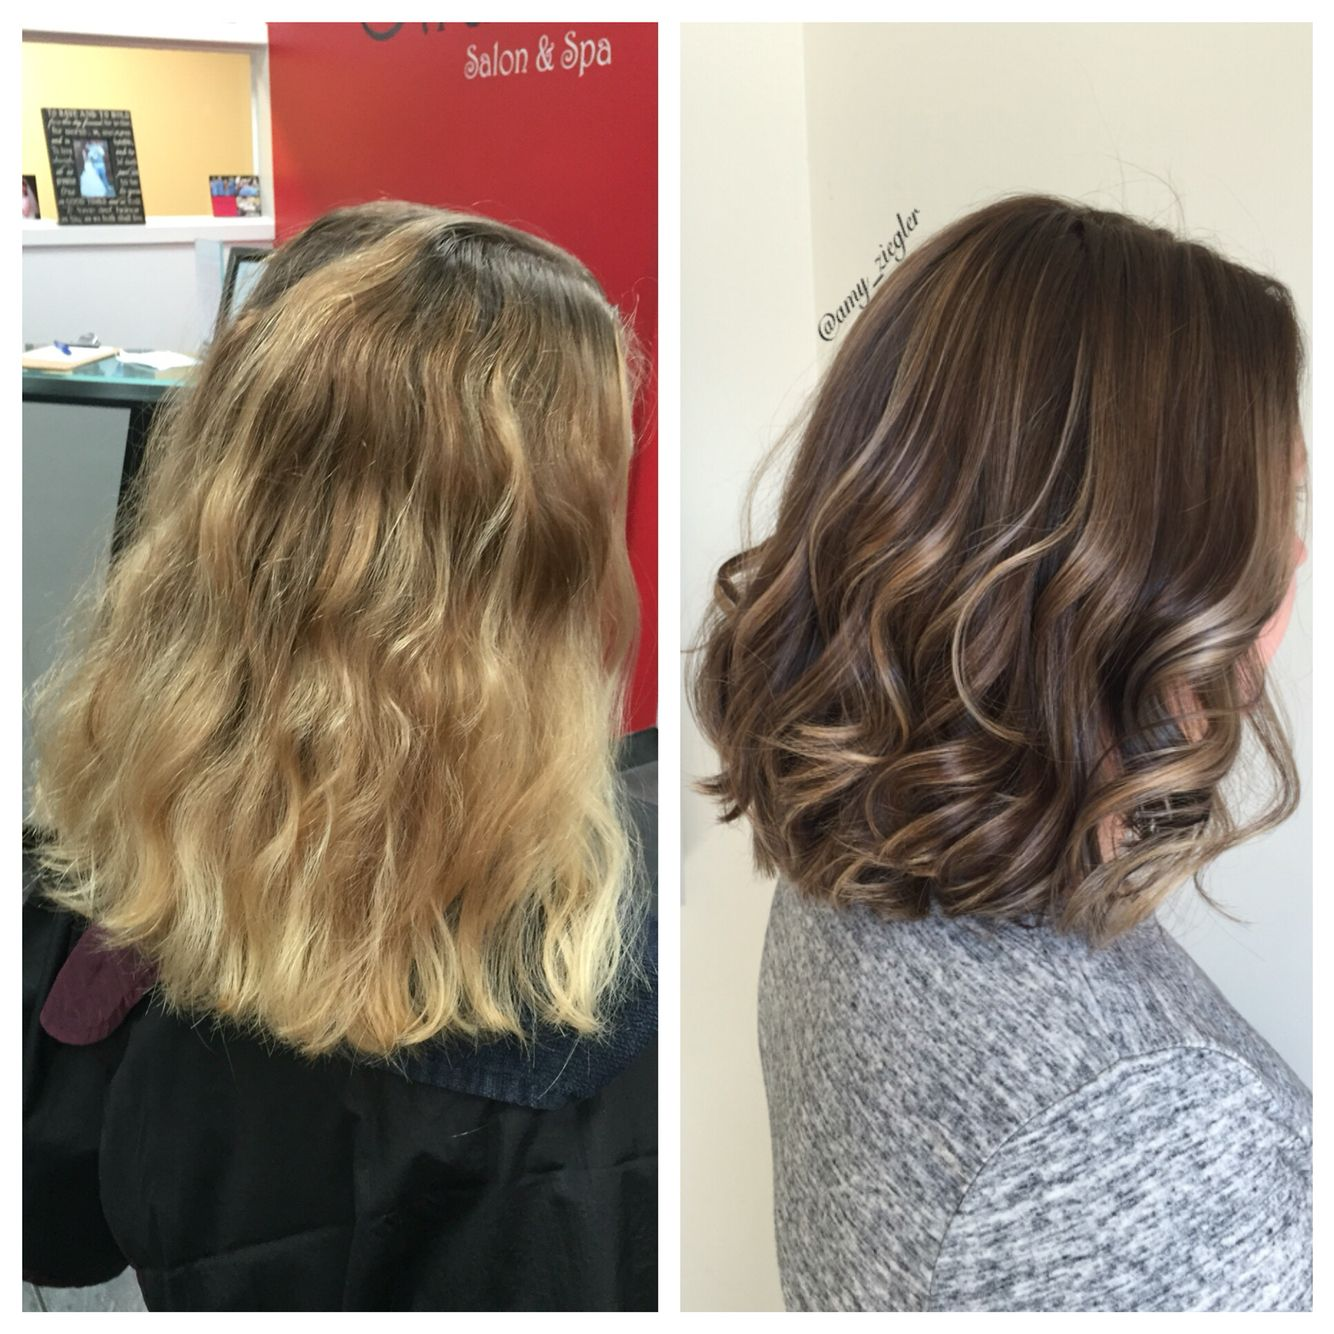 Before To After Blonde Bob Lob Hair Makeover Ideas Hair Transformation From Blonde Highlights Short Hair Short Hair Highlights Light Ash Blonde Hair Color